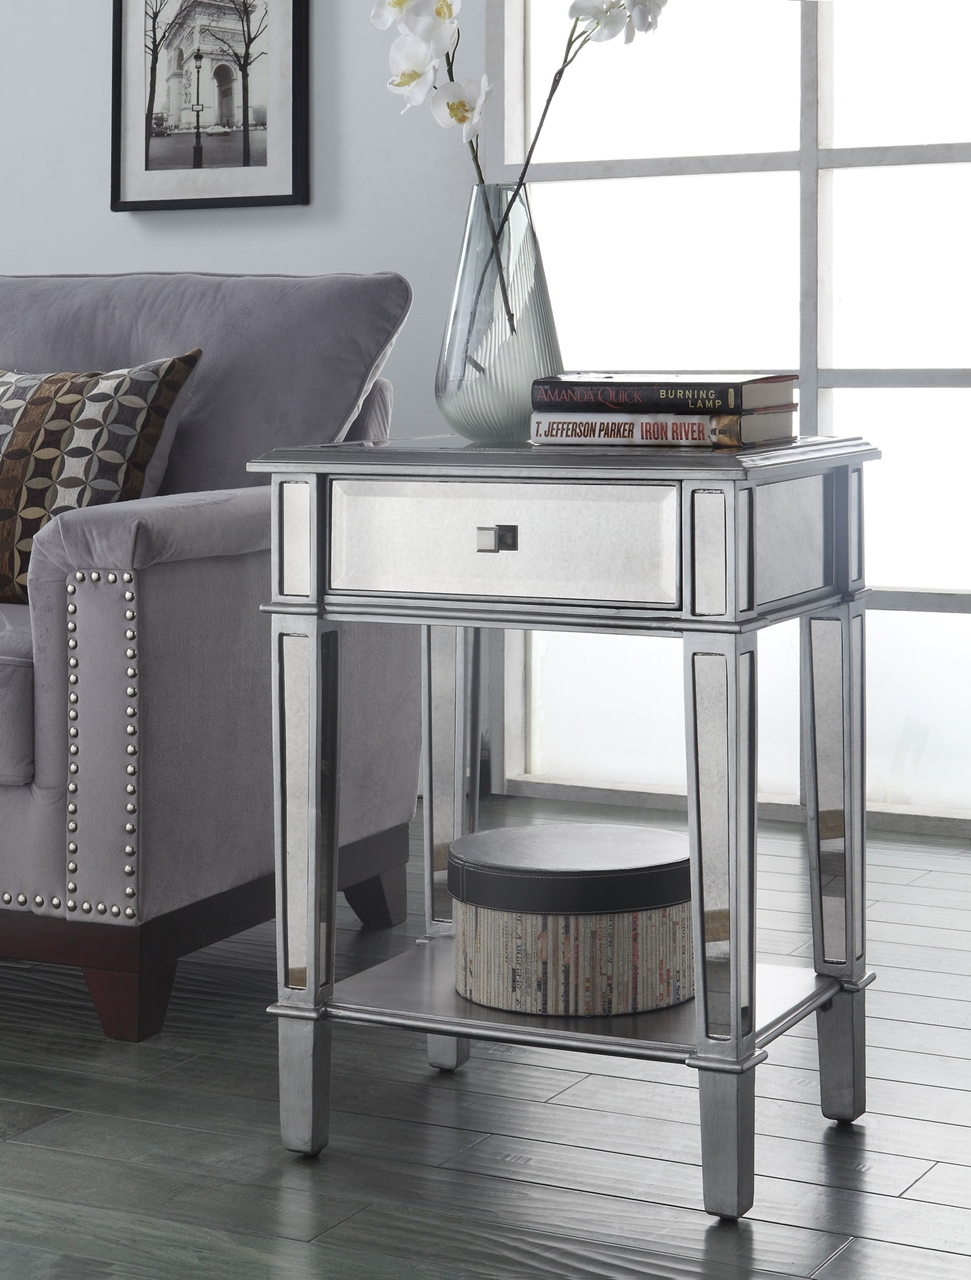 painted silver color small mirrored accent table with drawer and furniture shelves plus flower stand living room spaces ideas christmas covers runners ikea hacks storage above